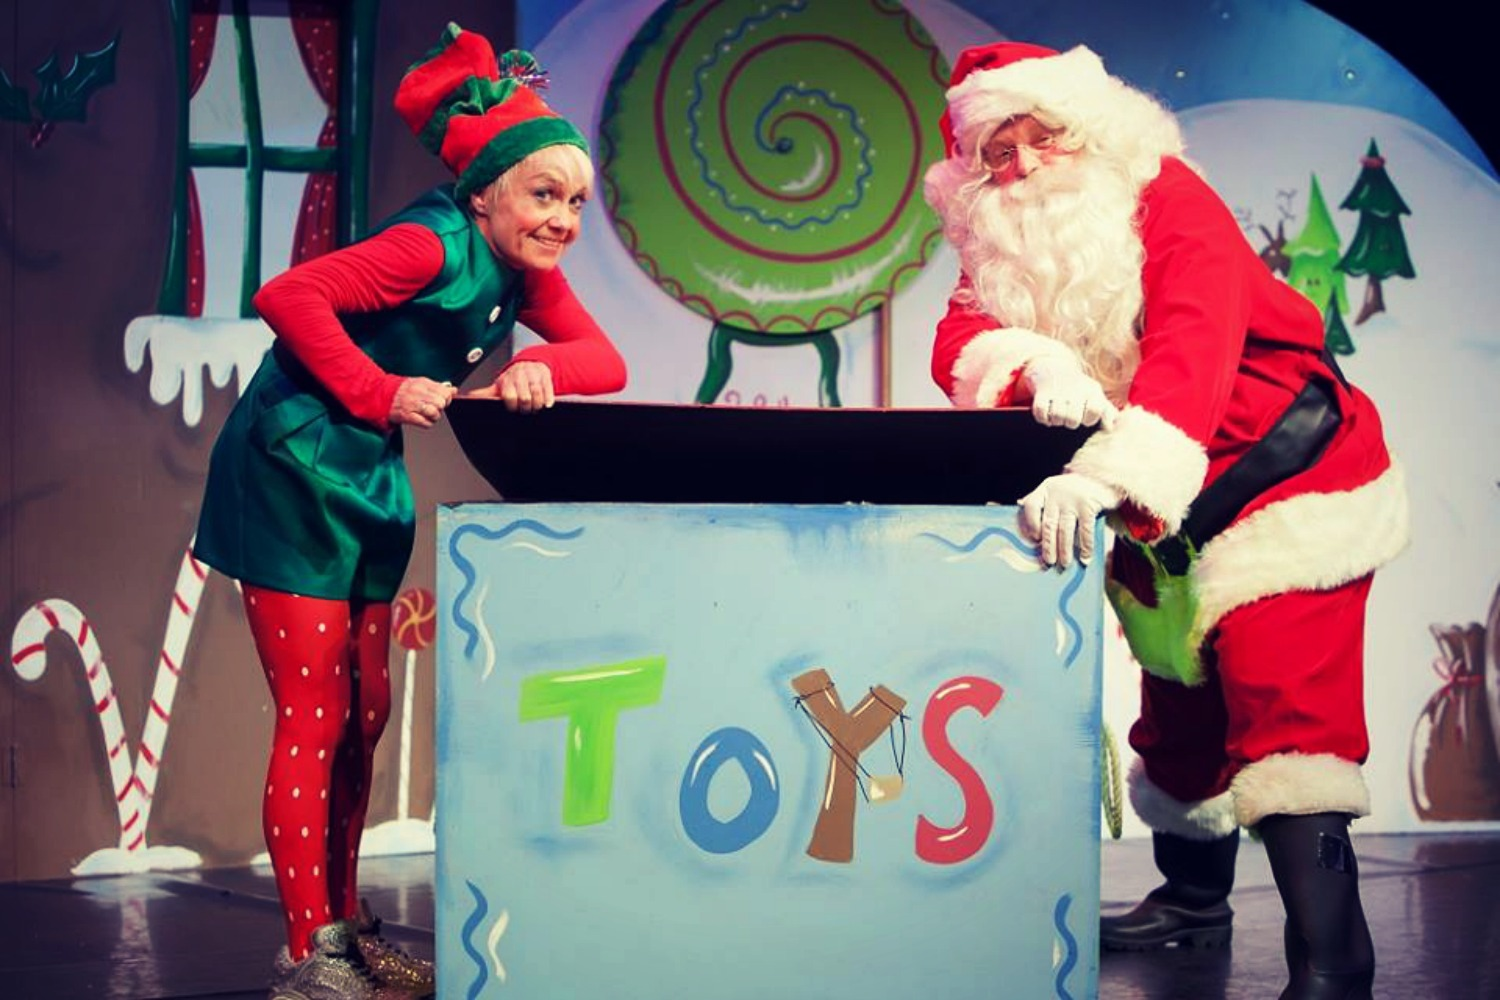 THE SANTA SHOW – A SHOW, PARTY AND GROTTO ALL IN ONE!